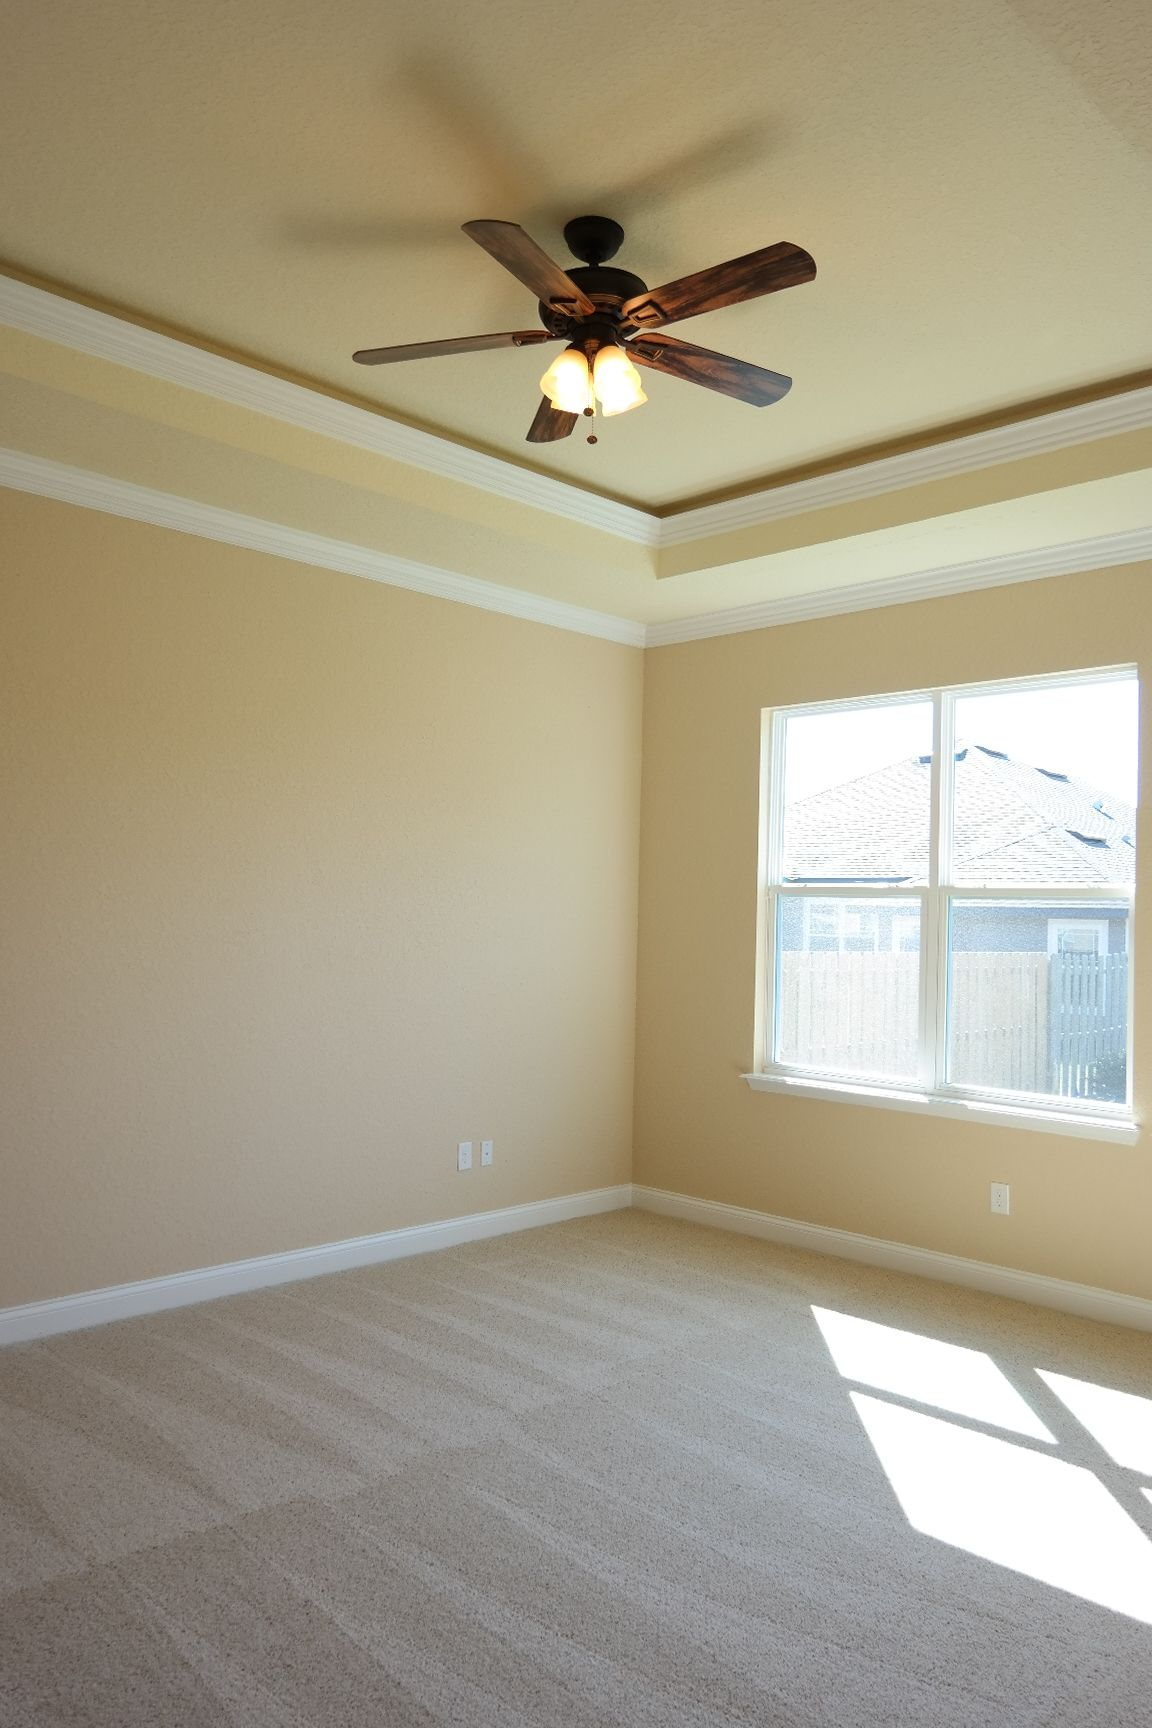 The Master Bedroom Features An 11 Trey Ceiling And Crown